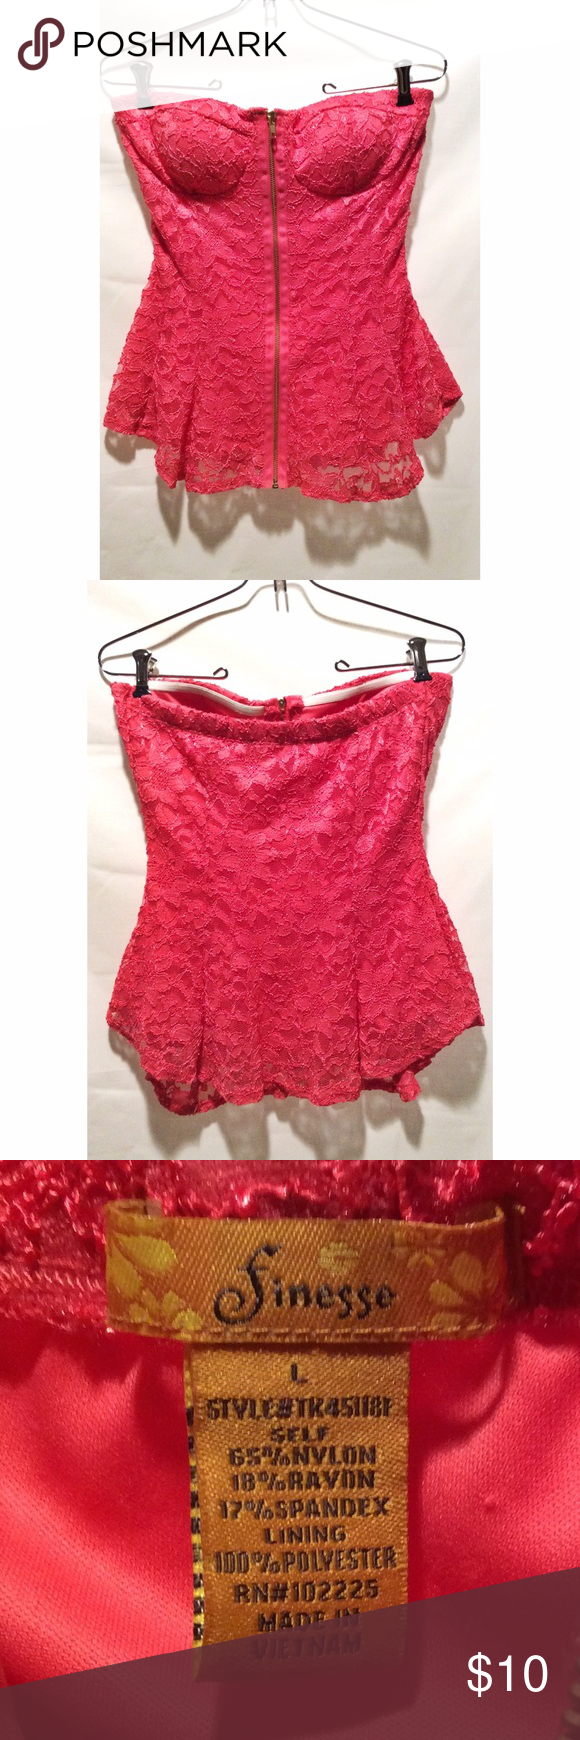 Fuchsia lace zip up tube top Tube top with single zipper in front.  Padded bra built in.  Size L. Tops Blouses